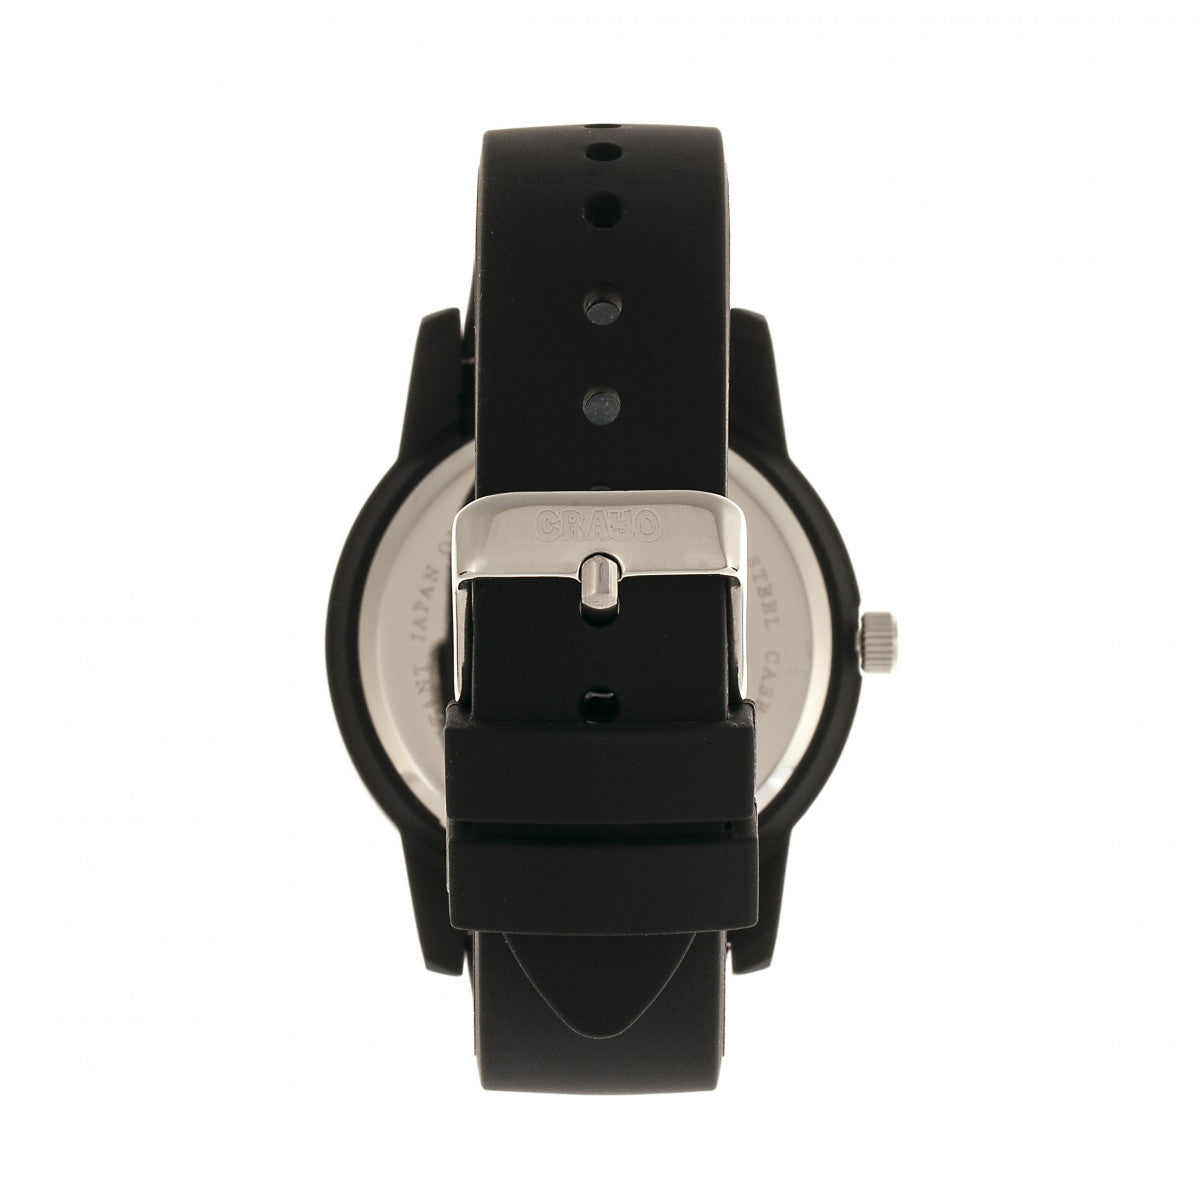 Crayo Festival Unisex Watch w/ Date - Black - CRACR2006